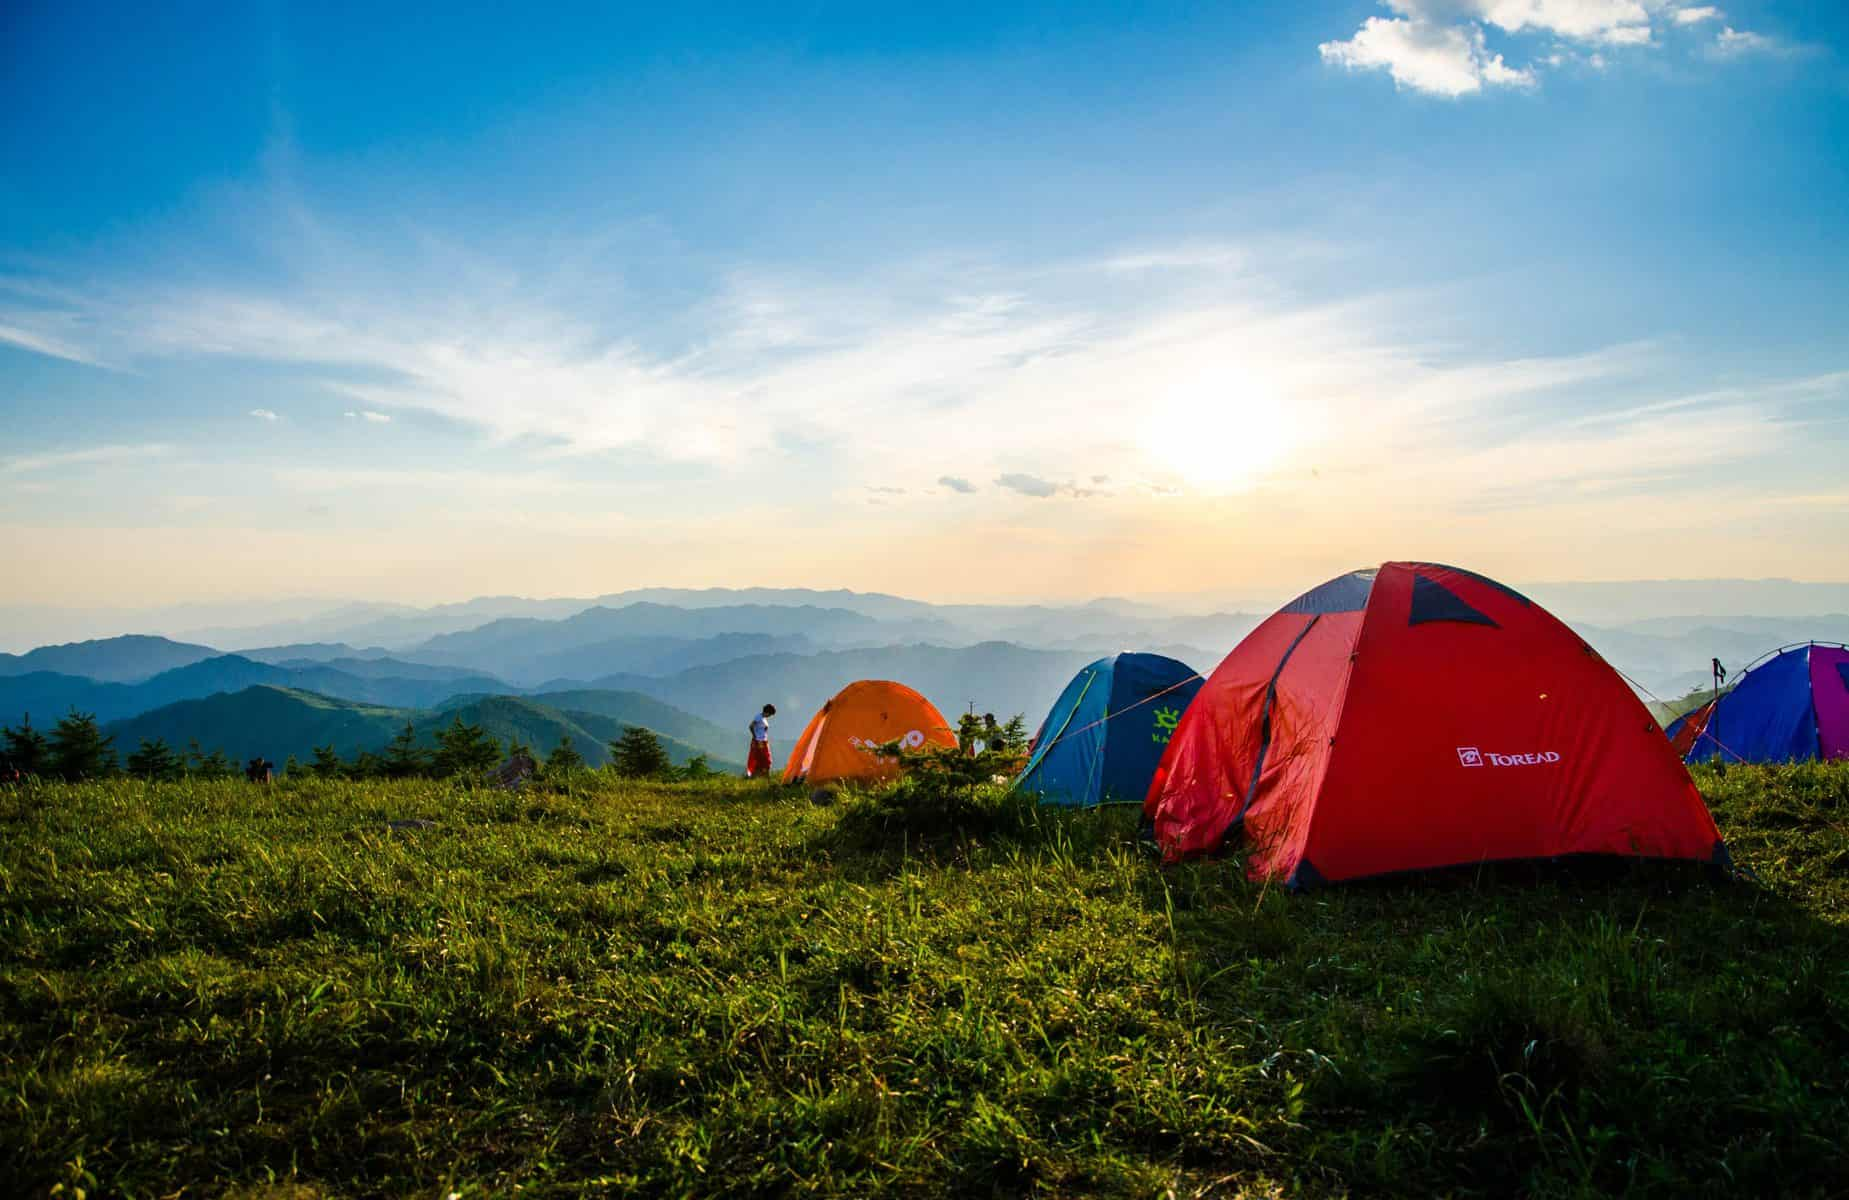 Canva - Photo of Pitched Dome Tents Overlooking Mountain Ranges